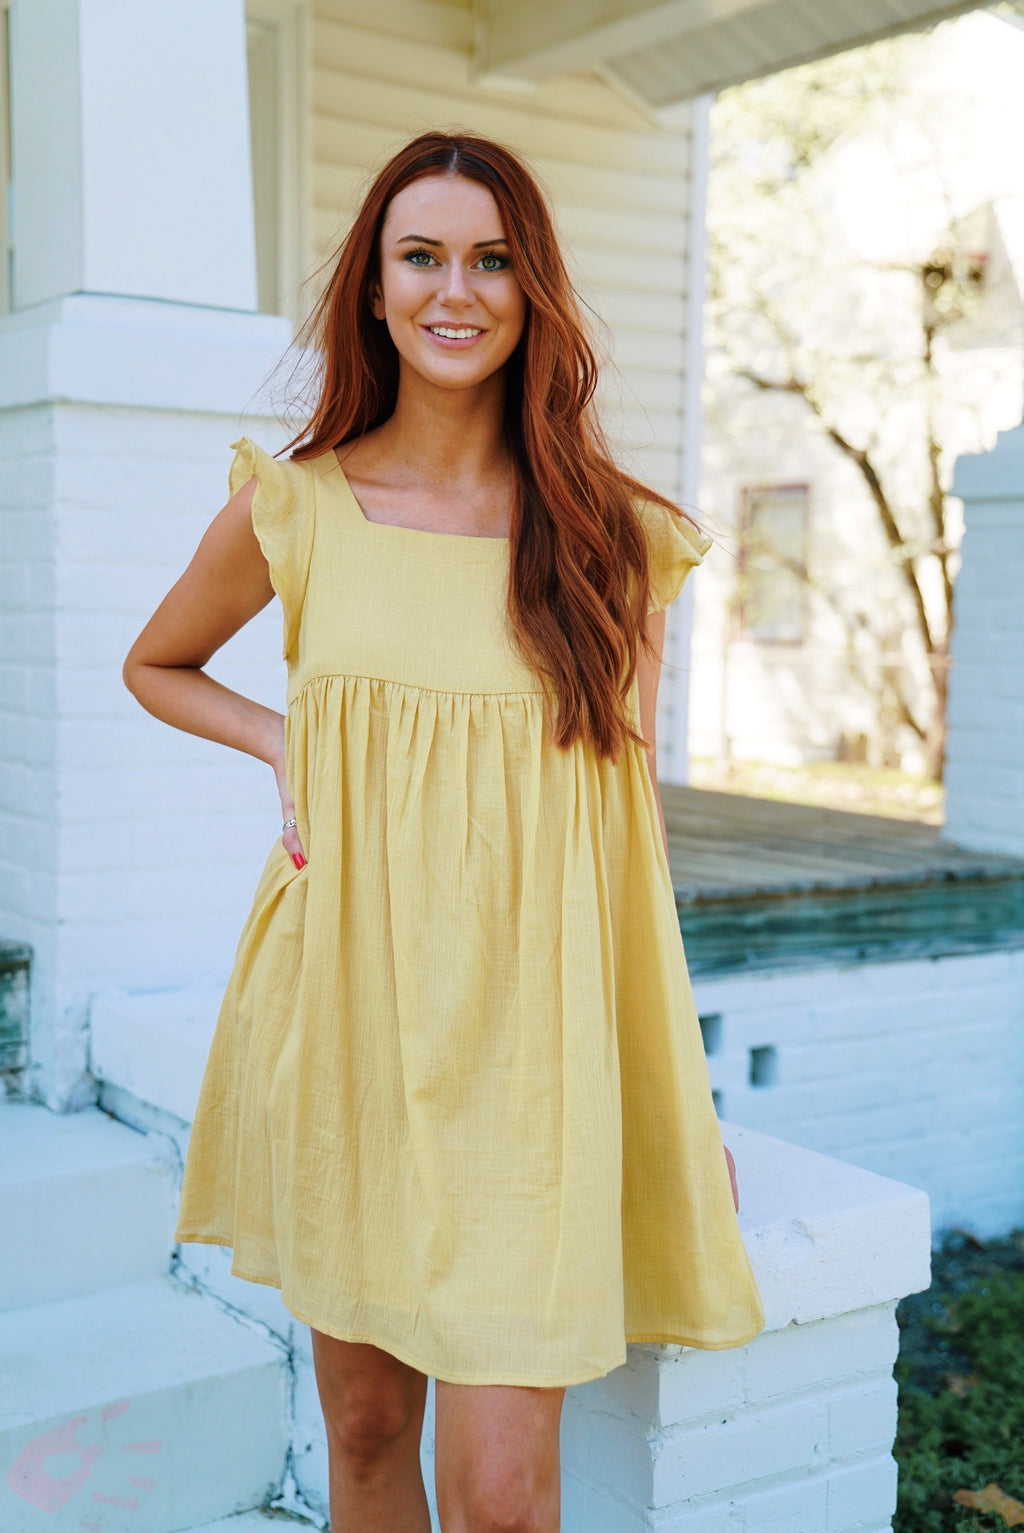 Sunkist Babydoll Dress - Mustard